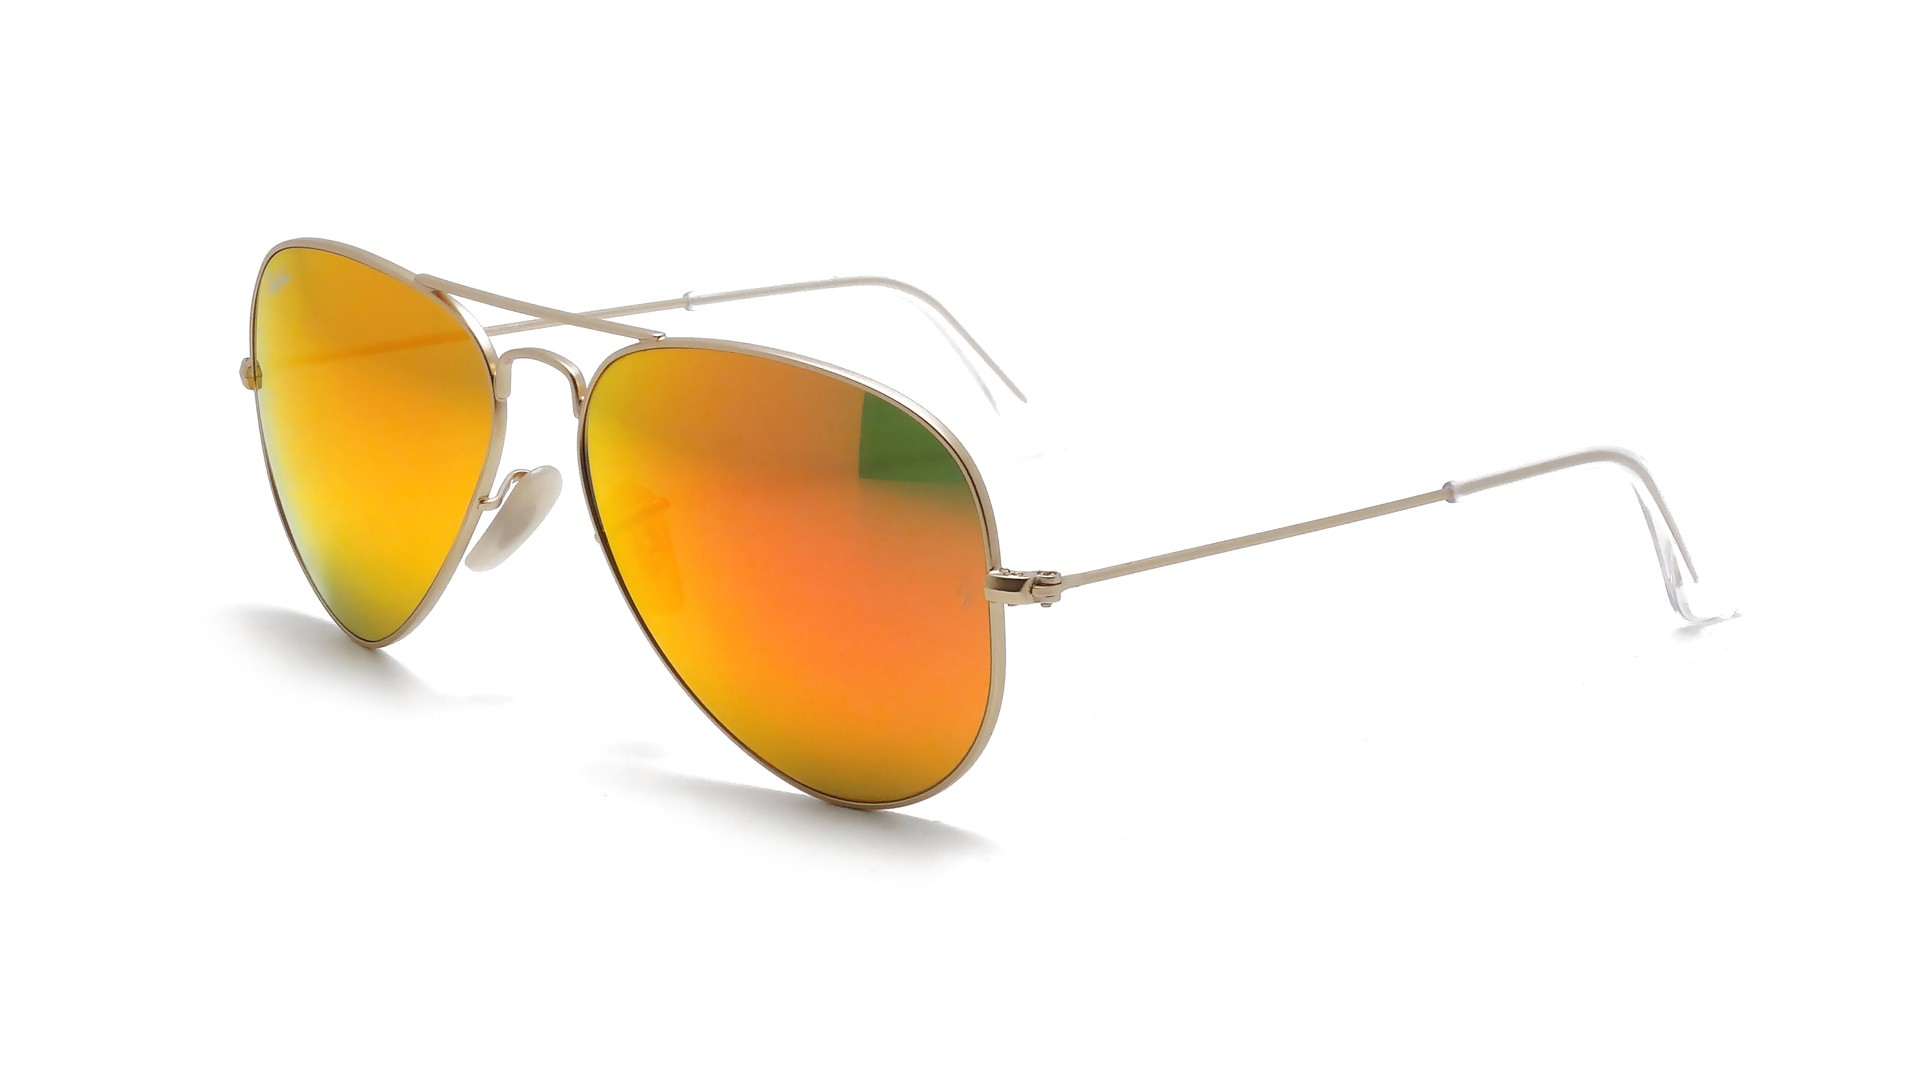 Ray-Ban Aviator Metal Or RB3025 112 69 58-14   Prix 69,20 €   Visiofactory 7c7c143da1fc